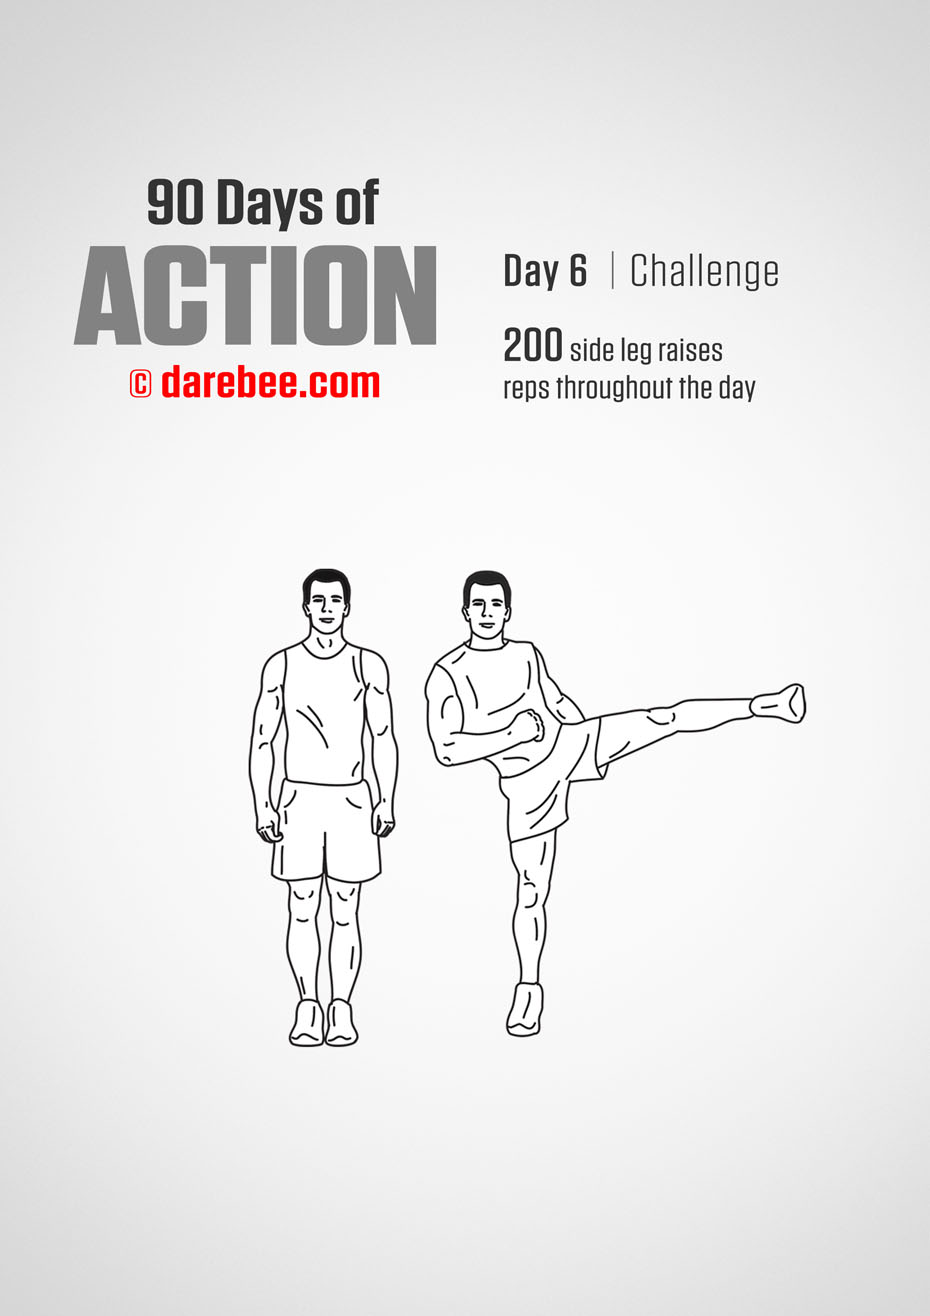 90 Days of Action by DAREBEE